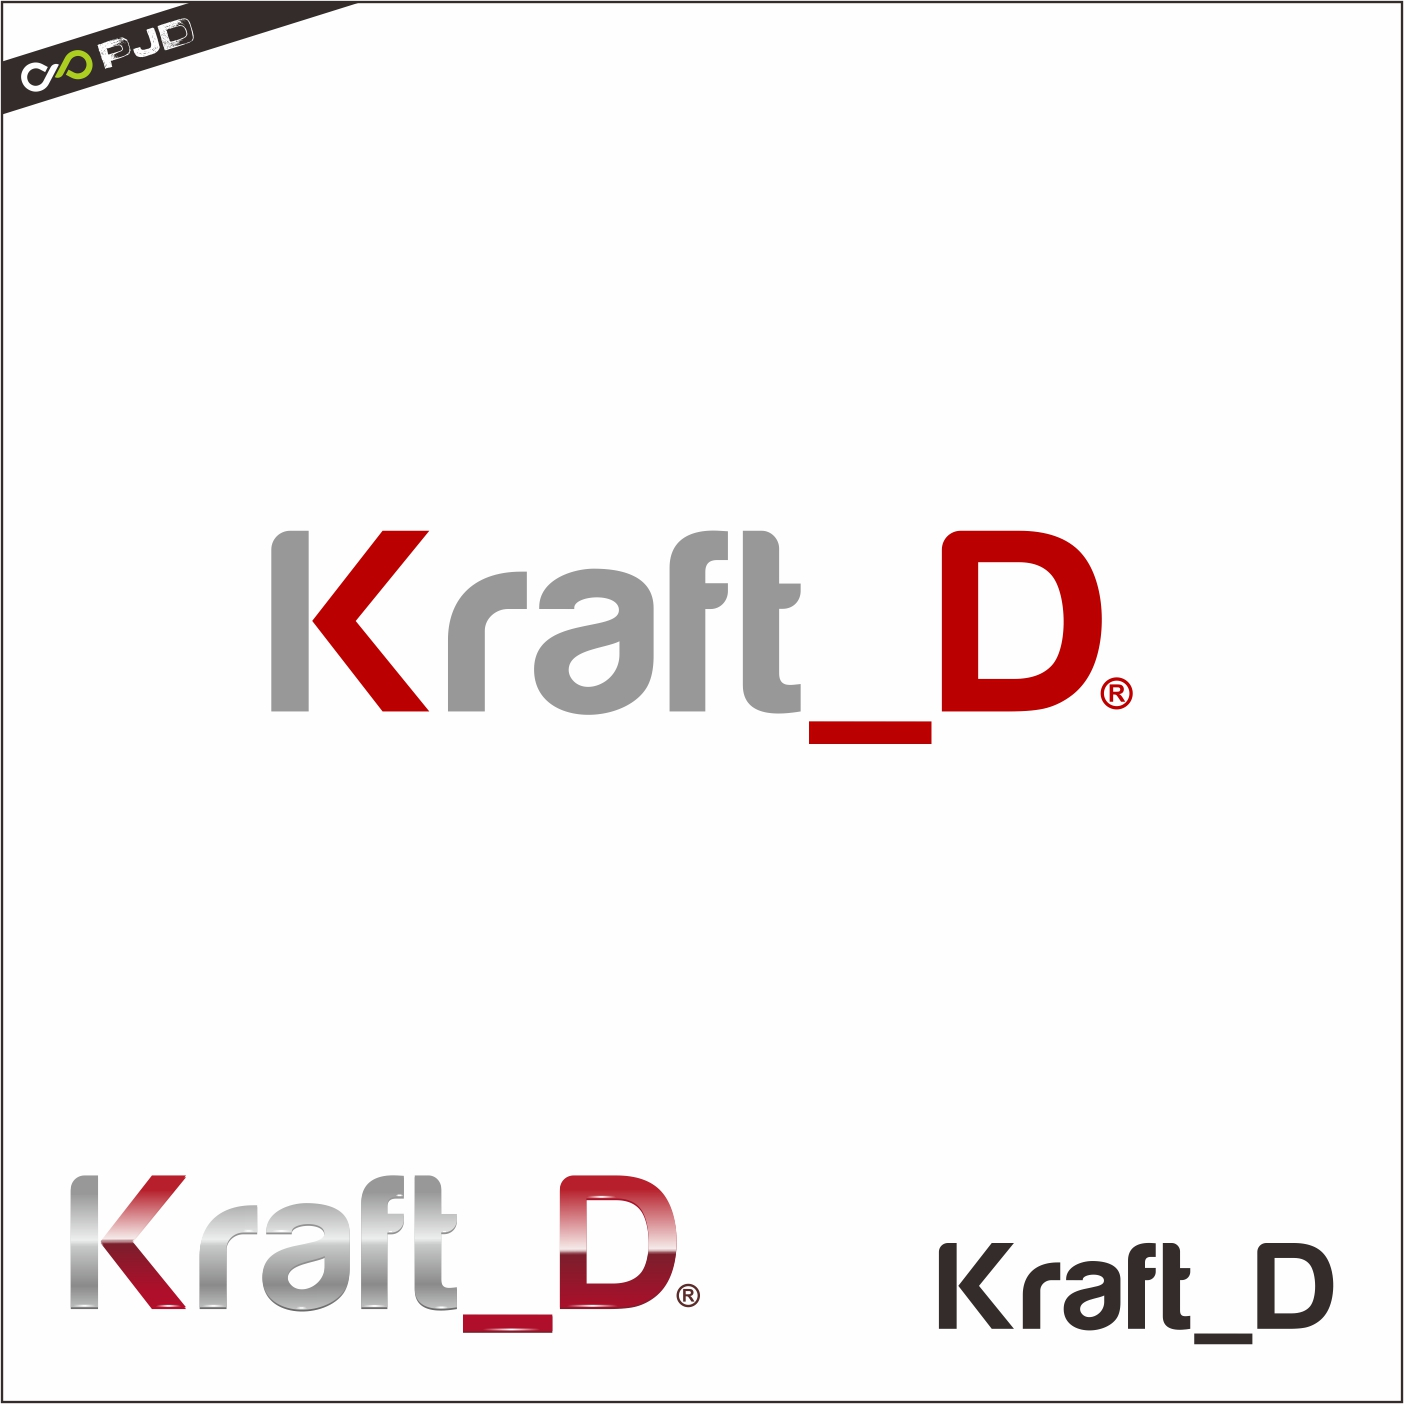 Logo Design by PJD - Entry No. 352 in the Logo Design Contest Unique Logo Design Wanted for Kraft D Inc.